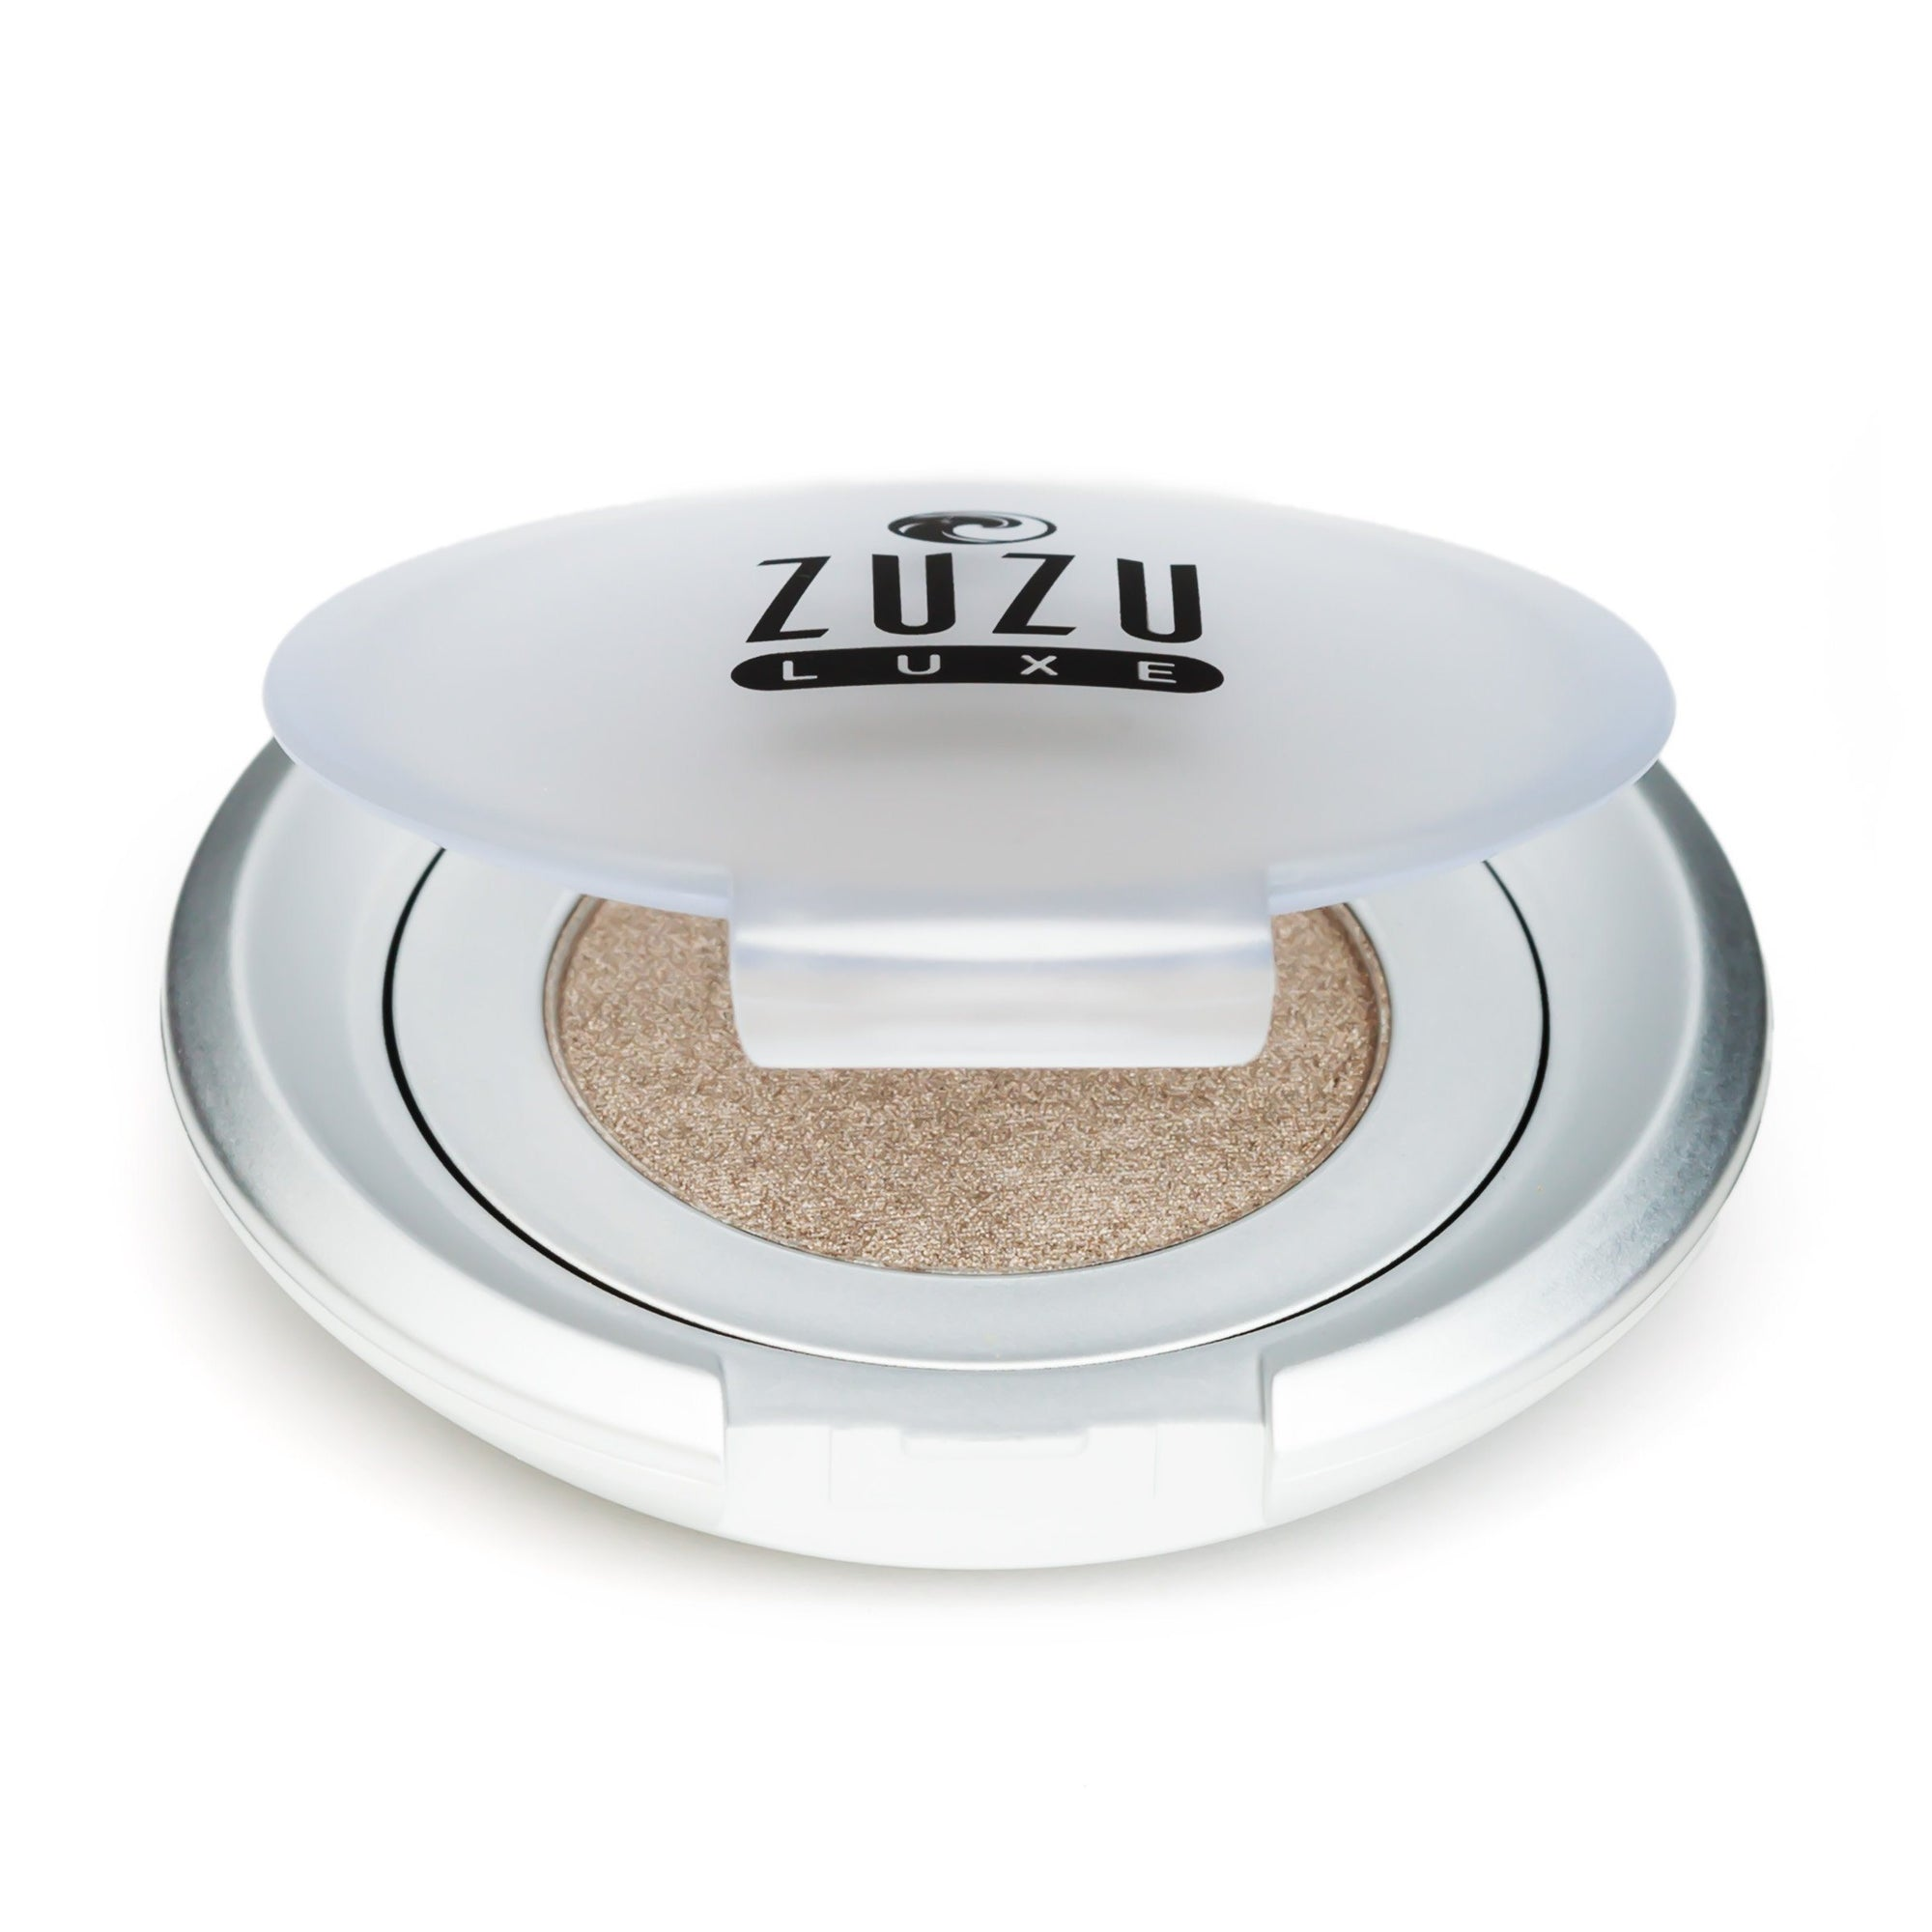 Beauty & Skin Care - Zuzu Luxe - Vegan Eyeshadow, Vixen